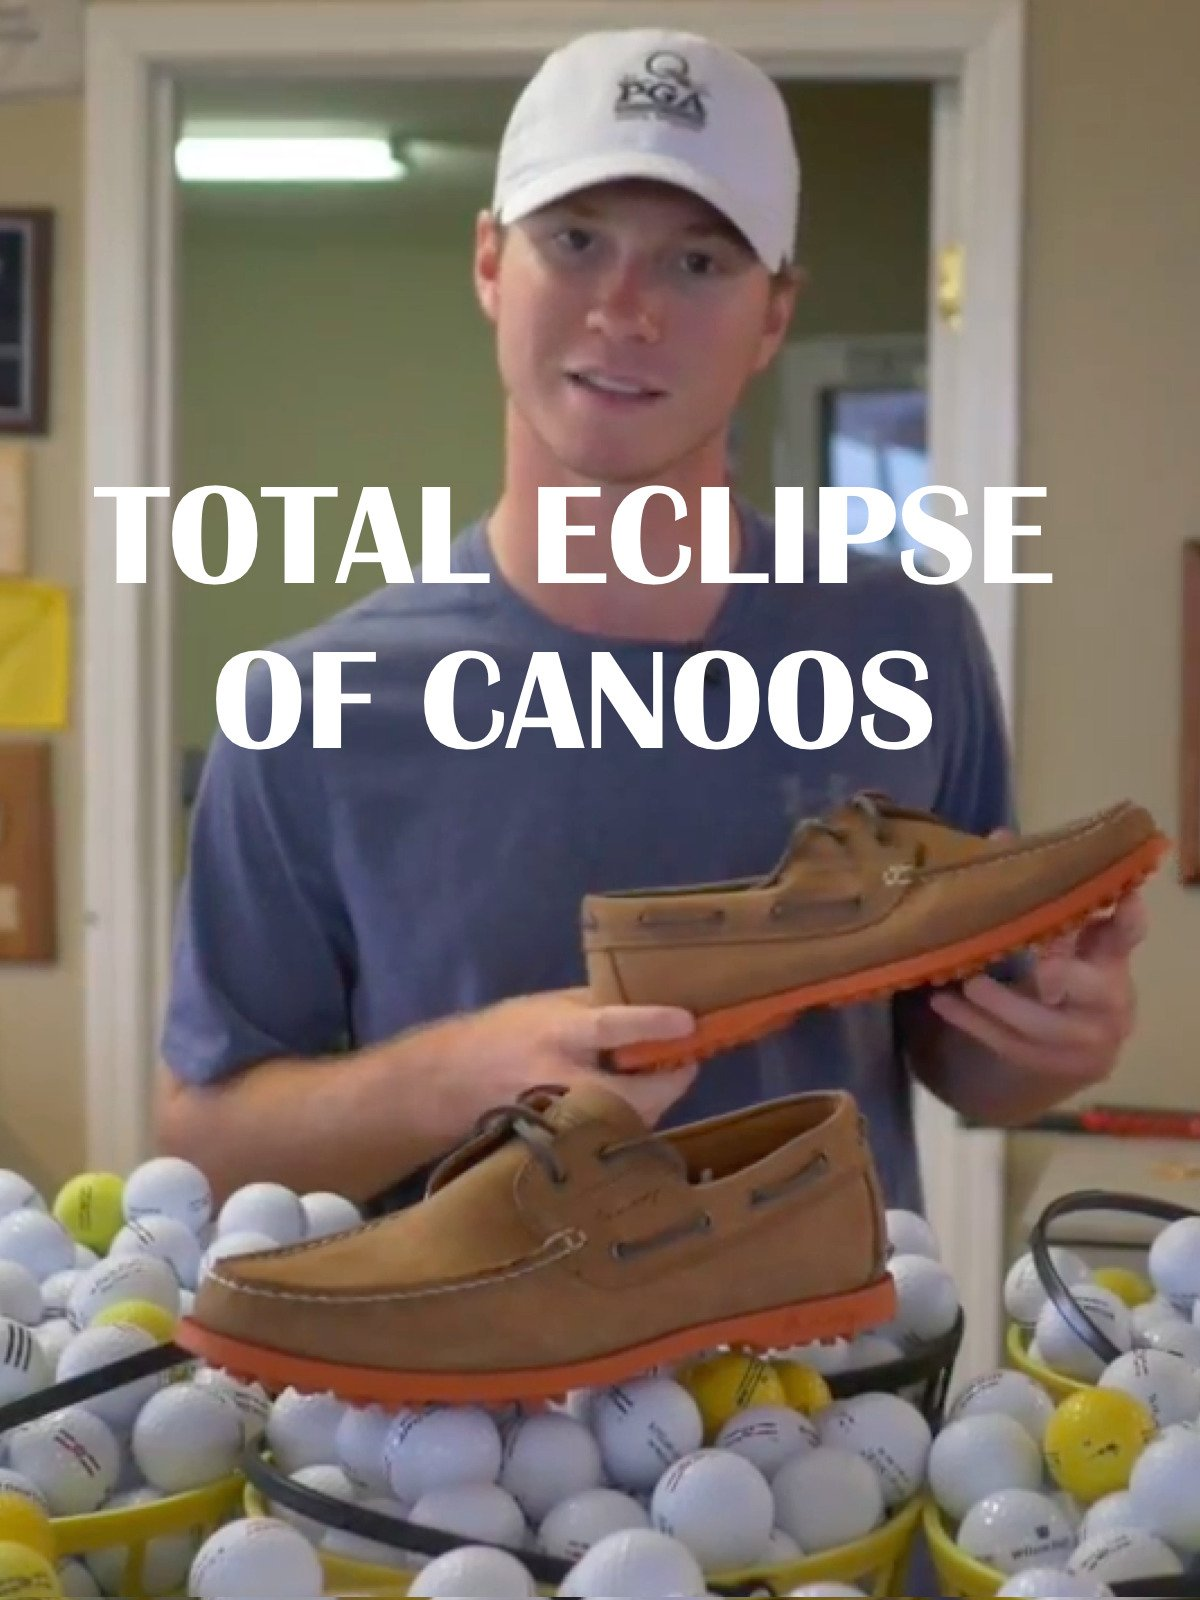 Total Eclipse of Canoos